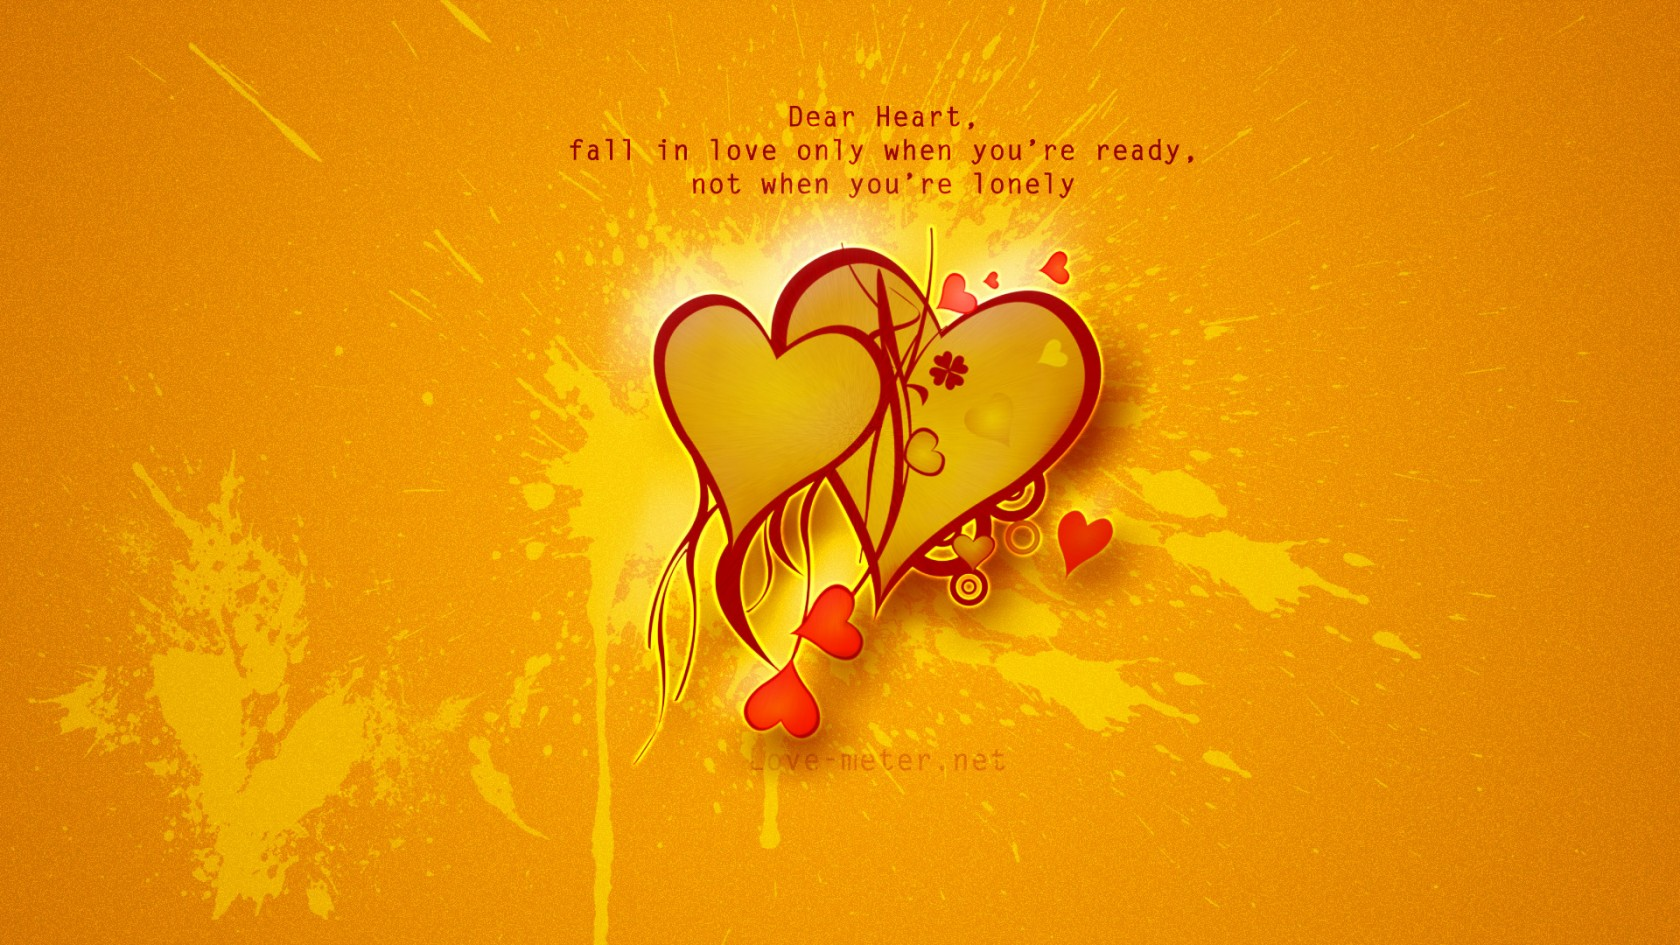 Hd wallpaper quotes on love - Fall In Love Quotes Hd Wallpaper Of Love Hdwallpaper2013 Com